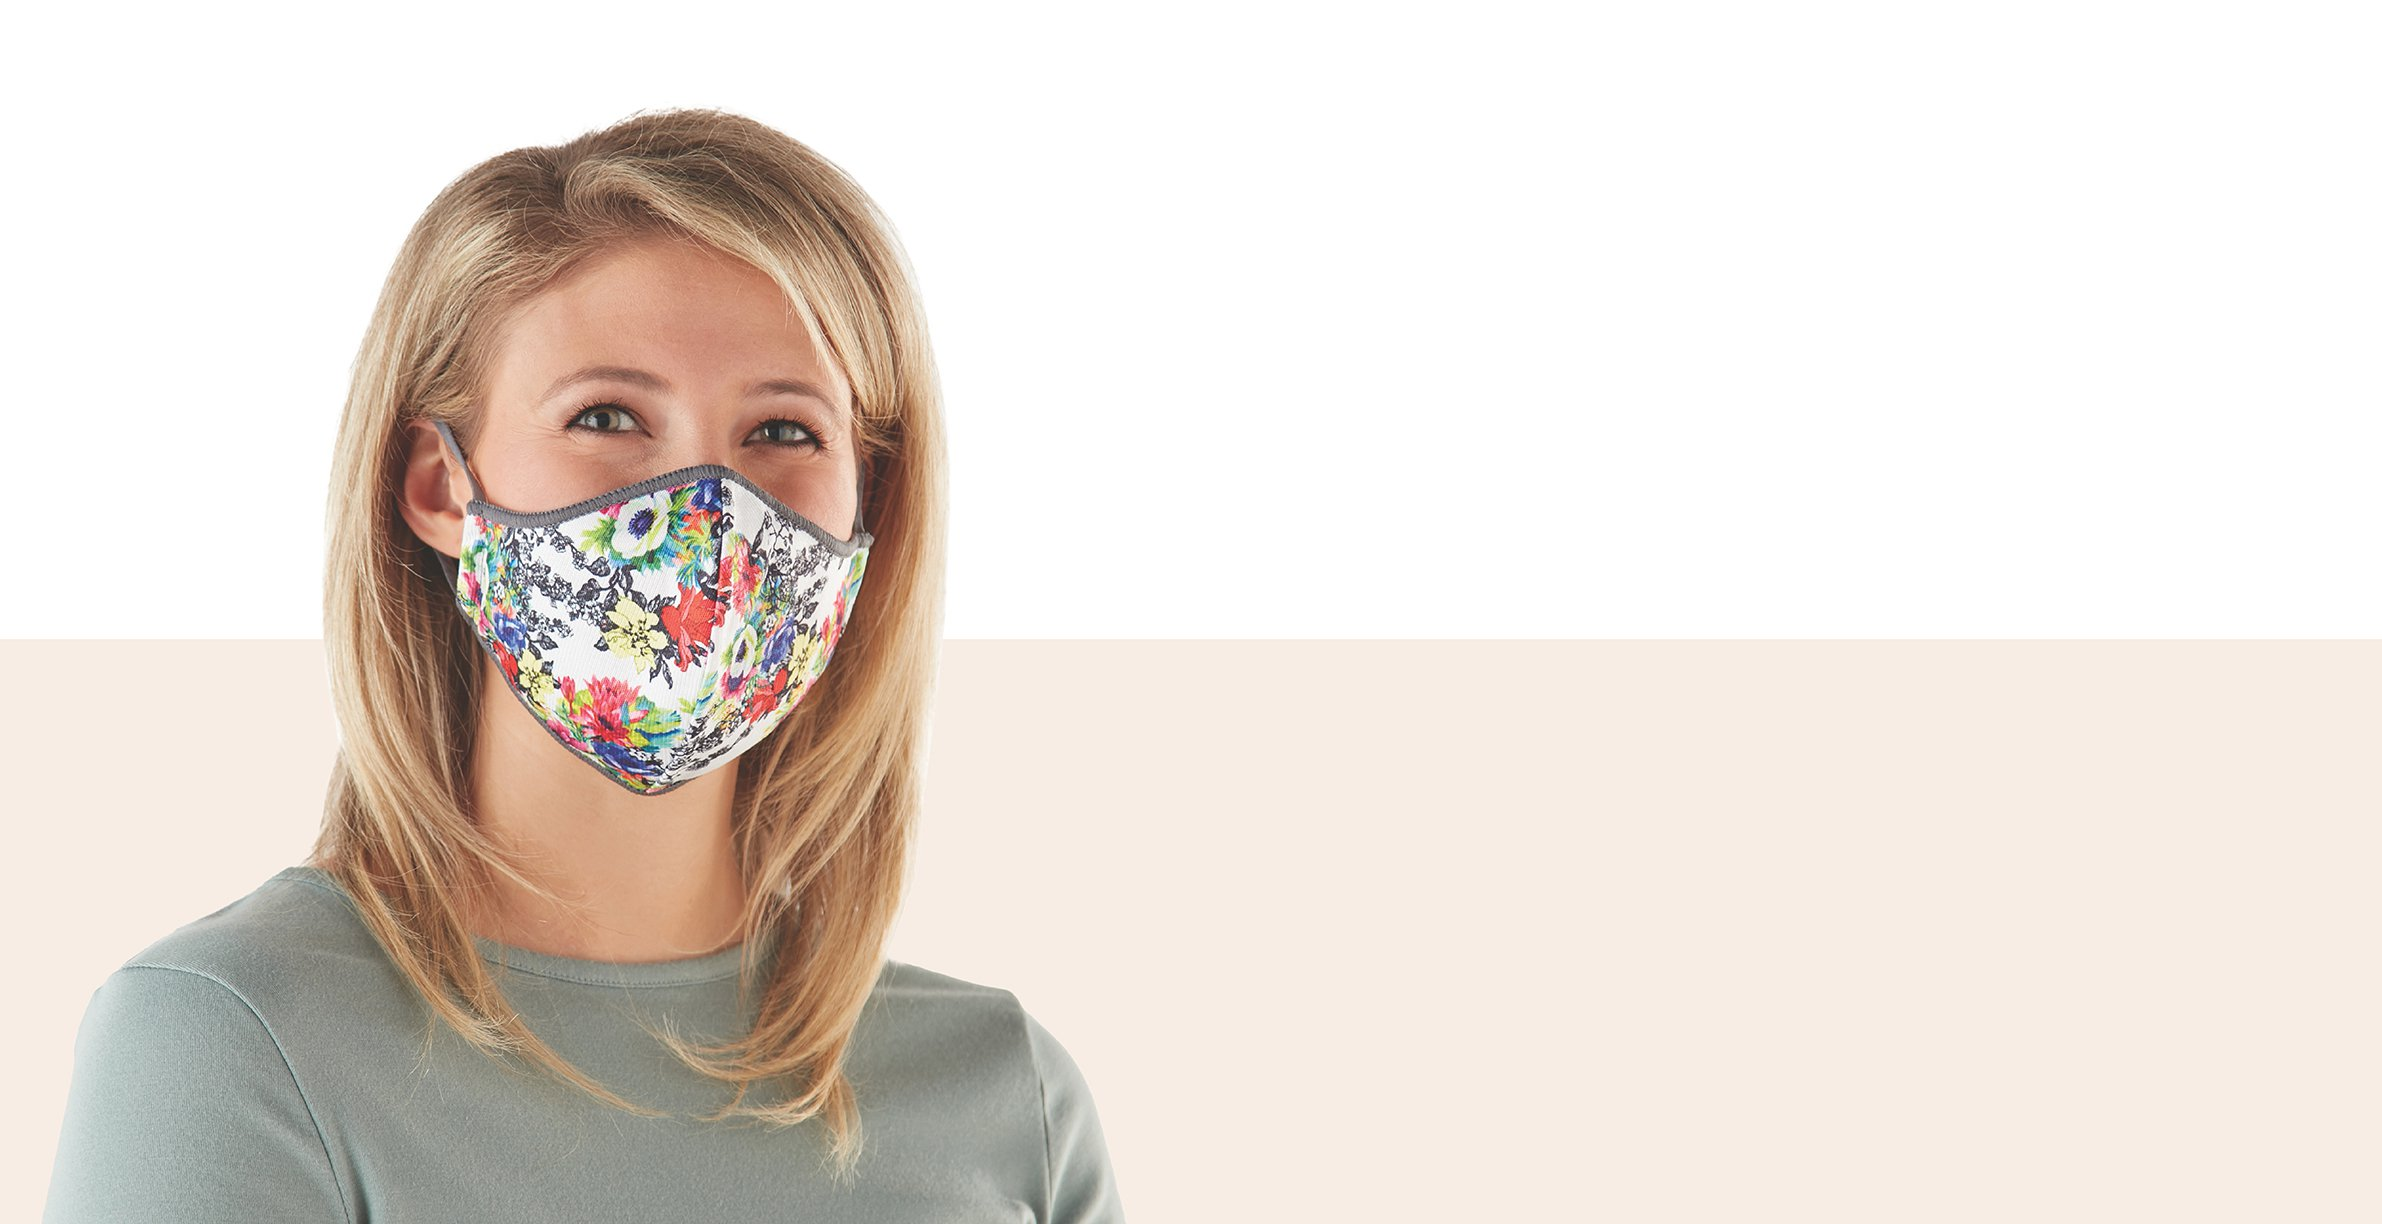 norwex mask offer